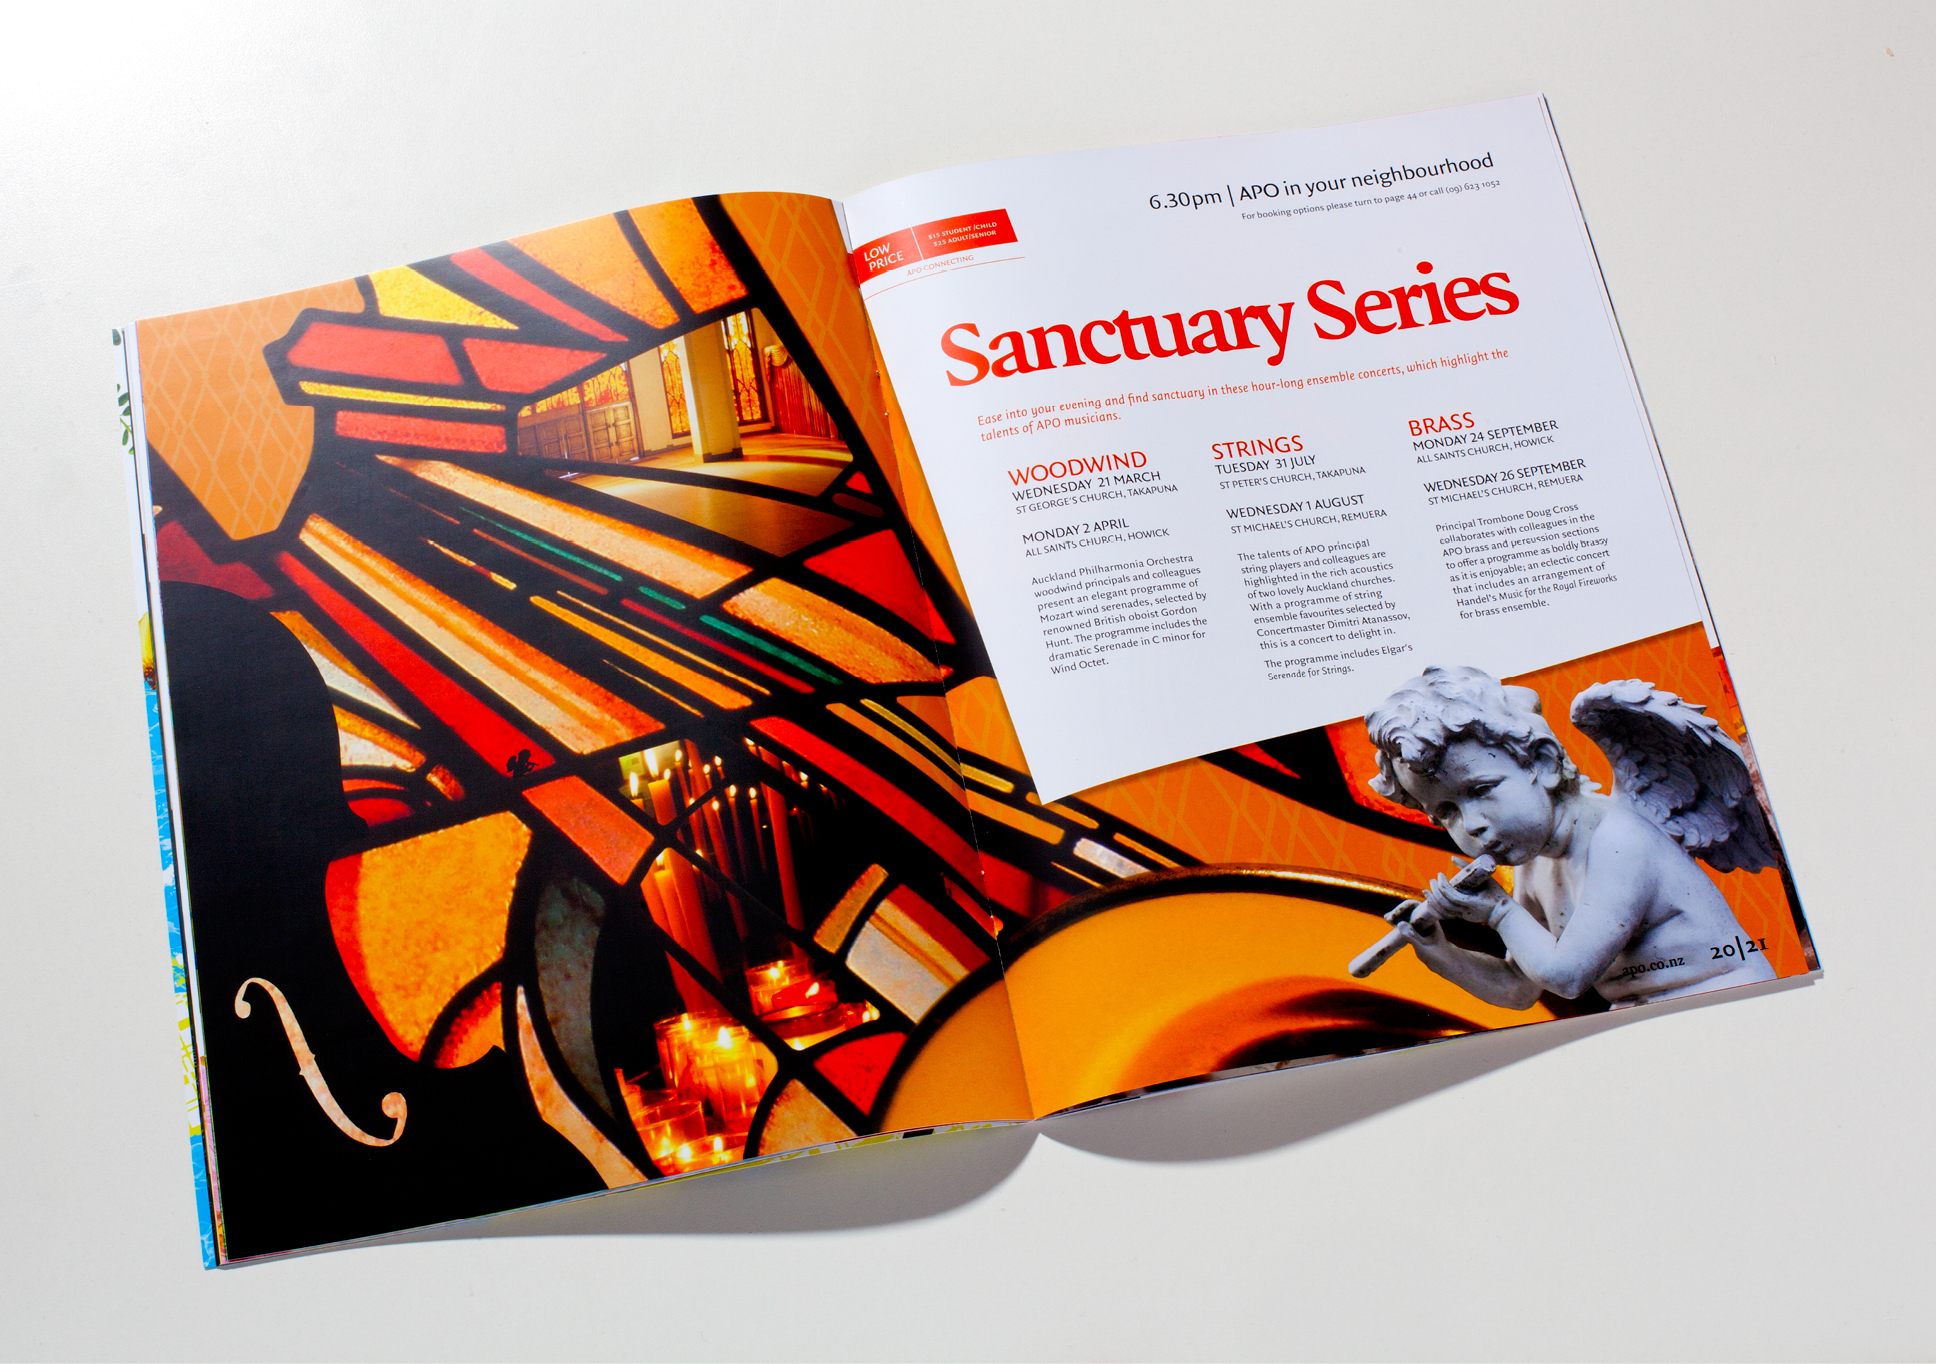 APO Sanctuary Series spread